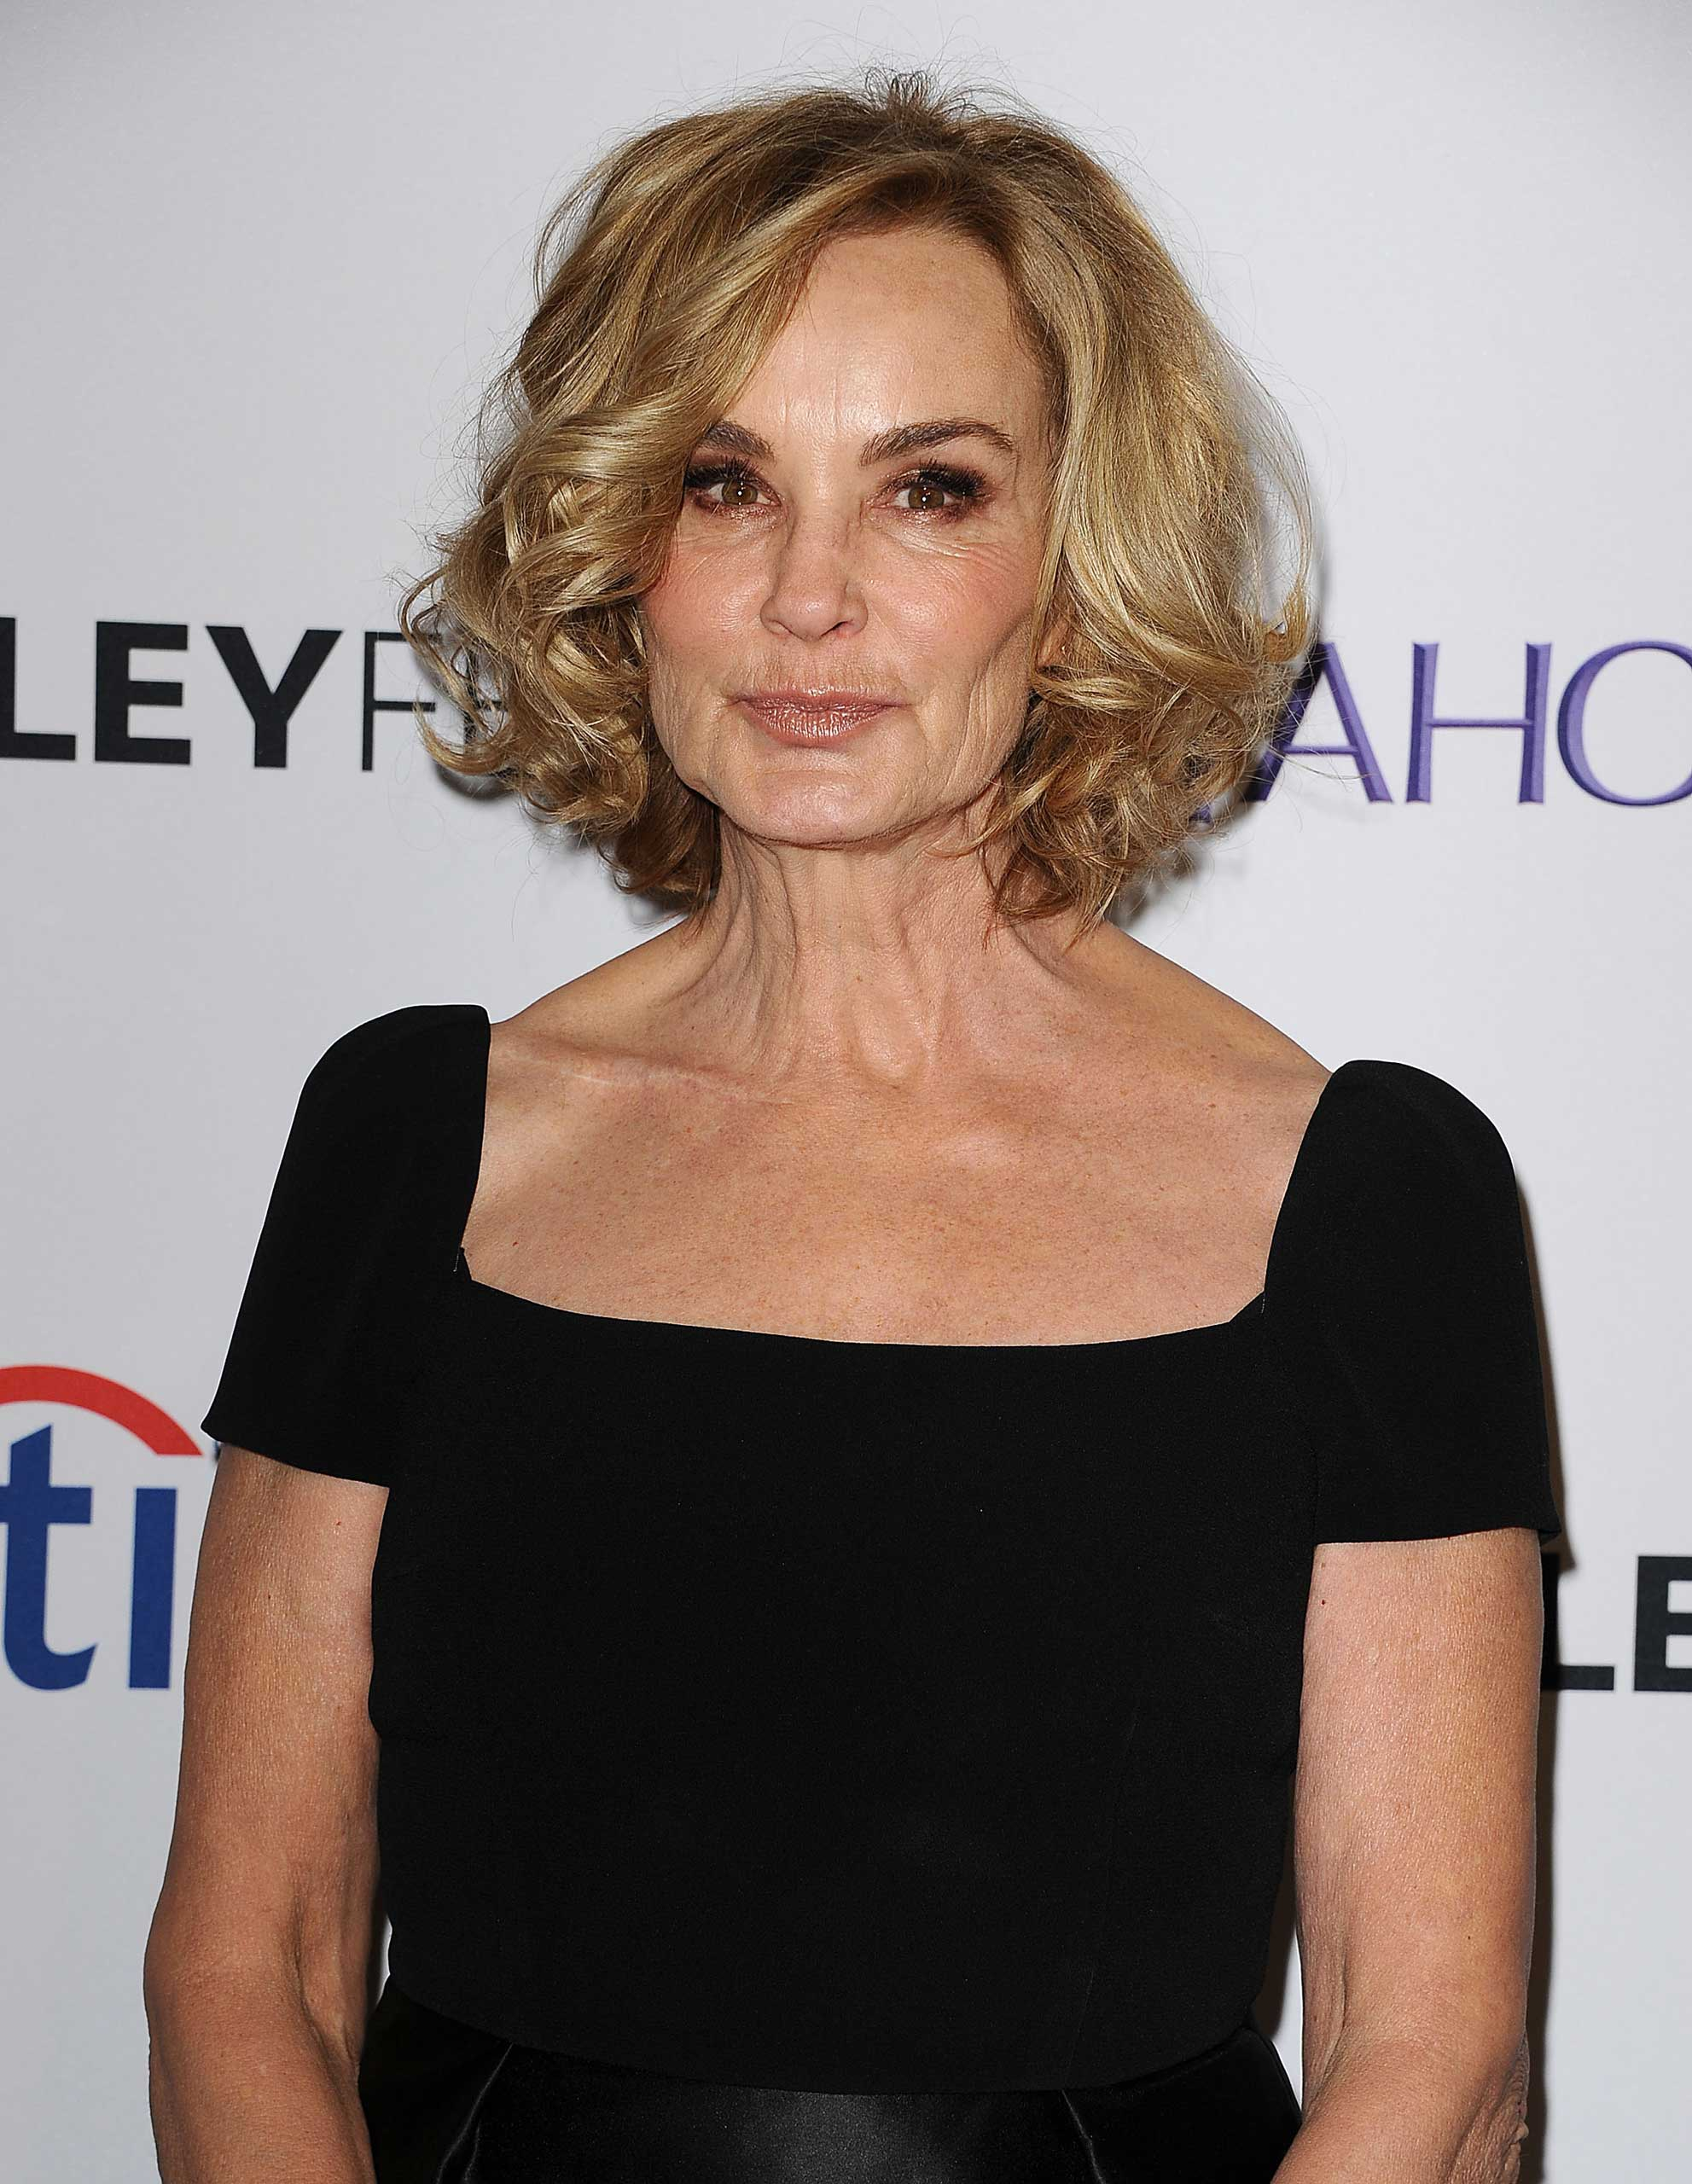 Jessica Lange attends the  American Horror Story: Freak Show  event at the 32nd annual PaleyFest at Dolby Theatre in Hollywood on March 15, 2015